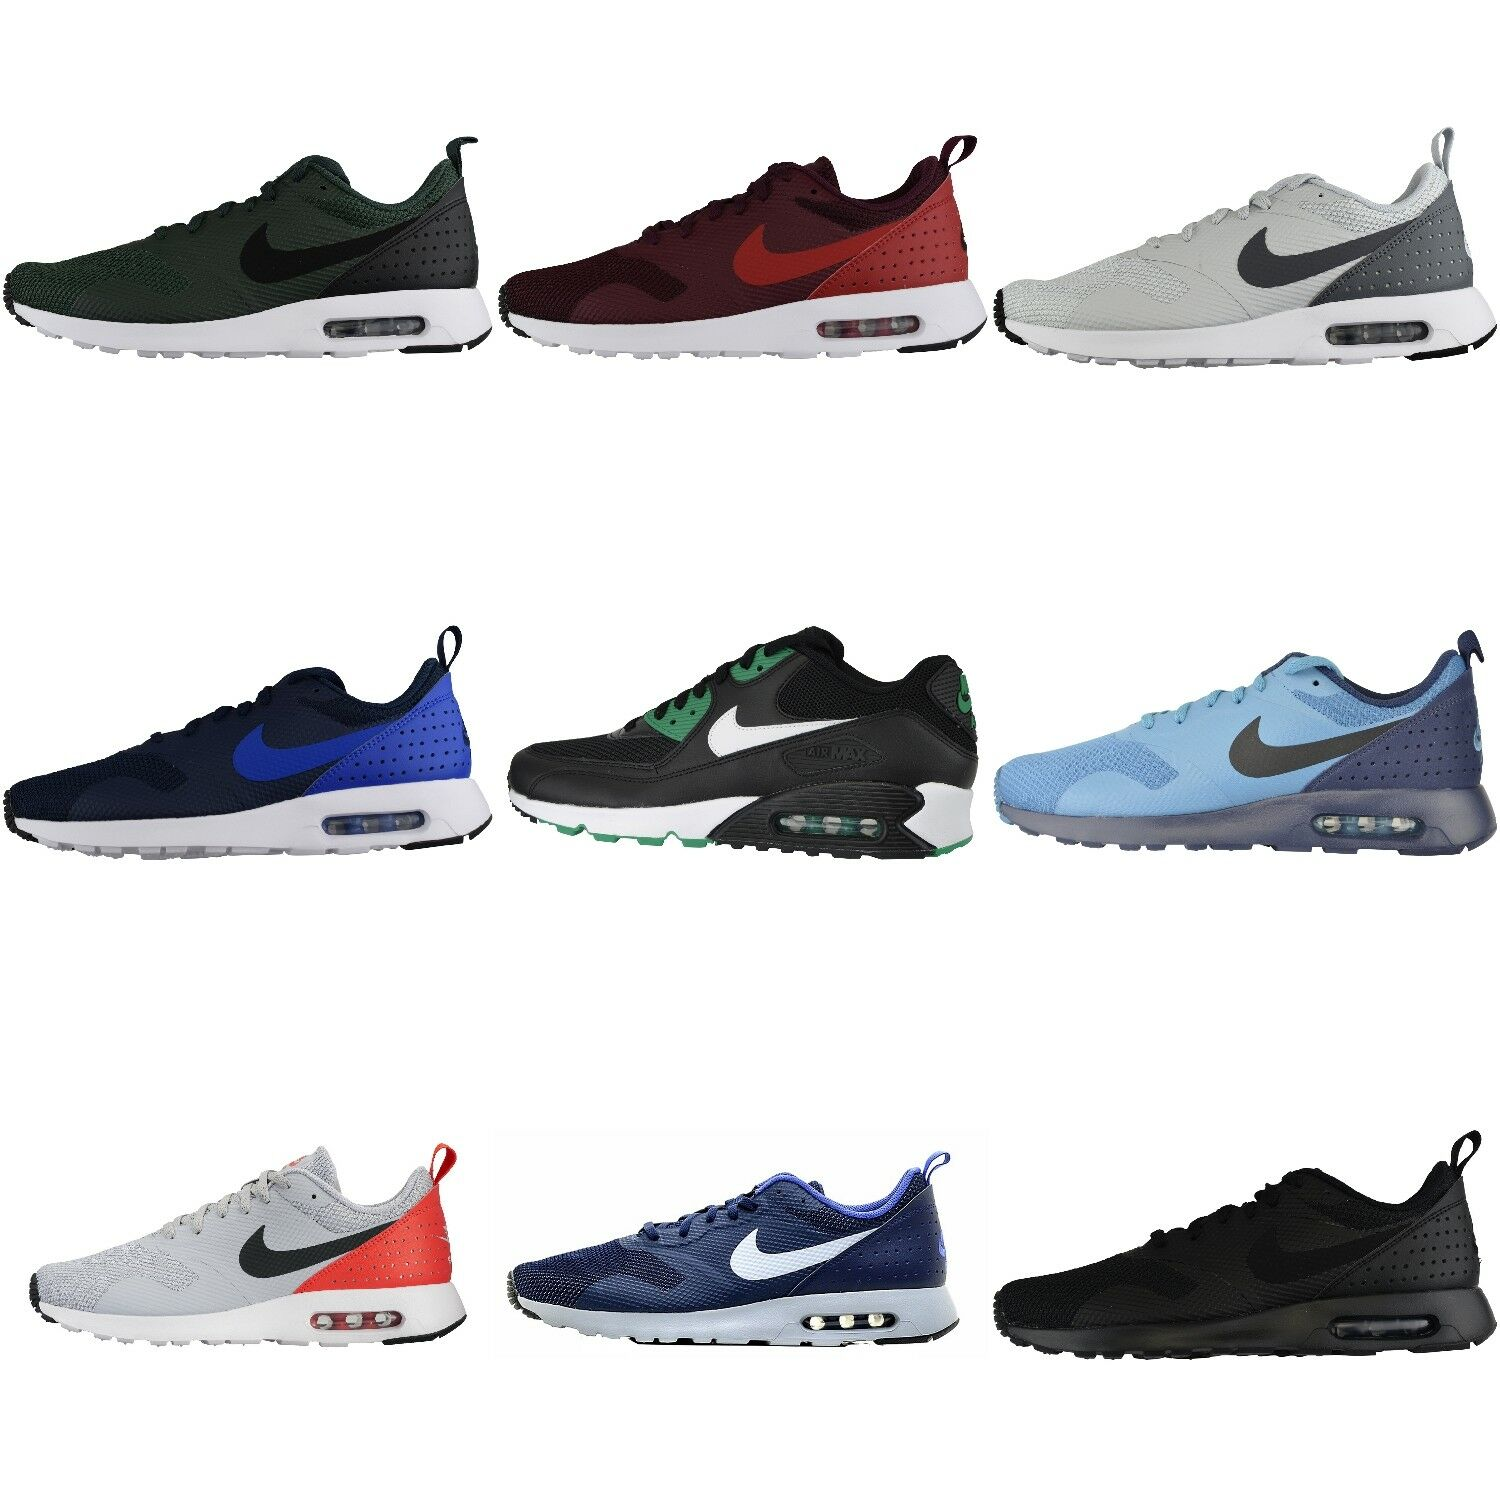 NIKE AIR MAX TAVAS TRAINERS Trainers Trainers Textile